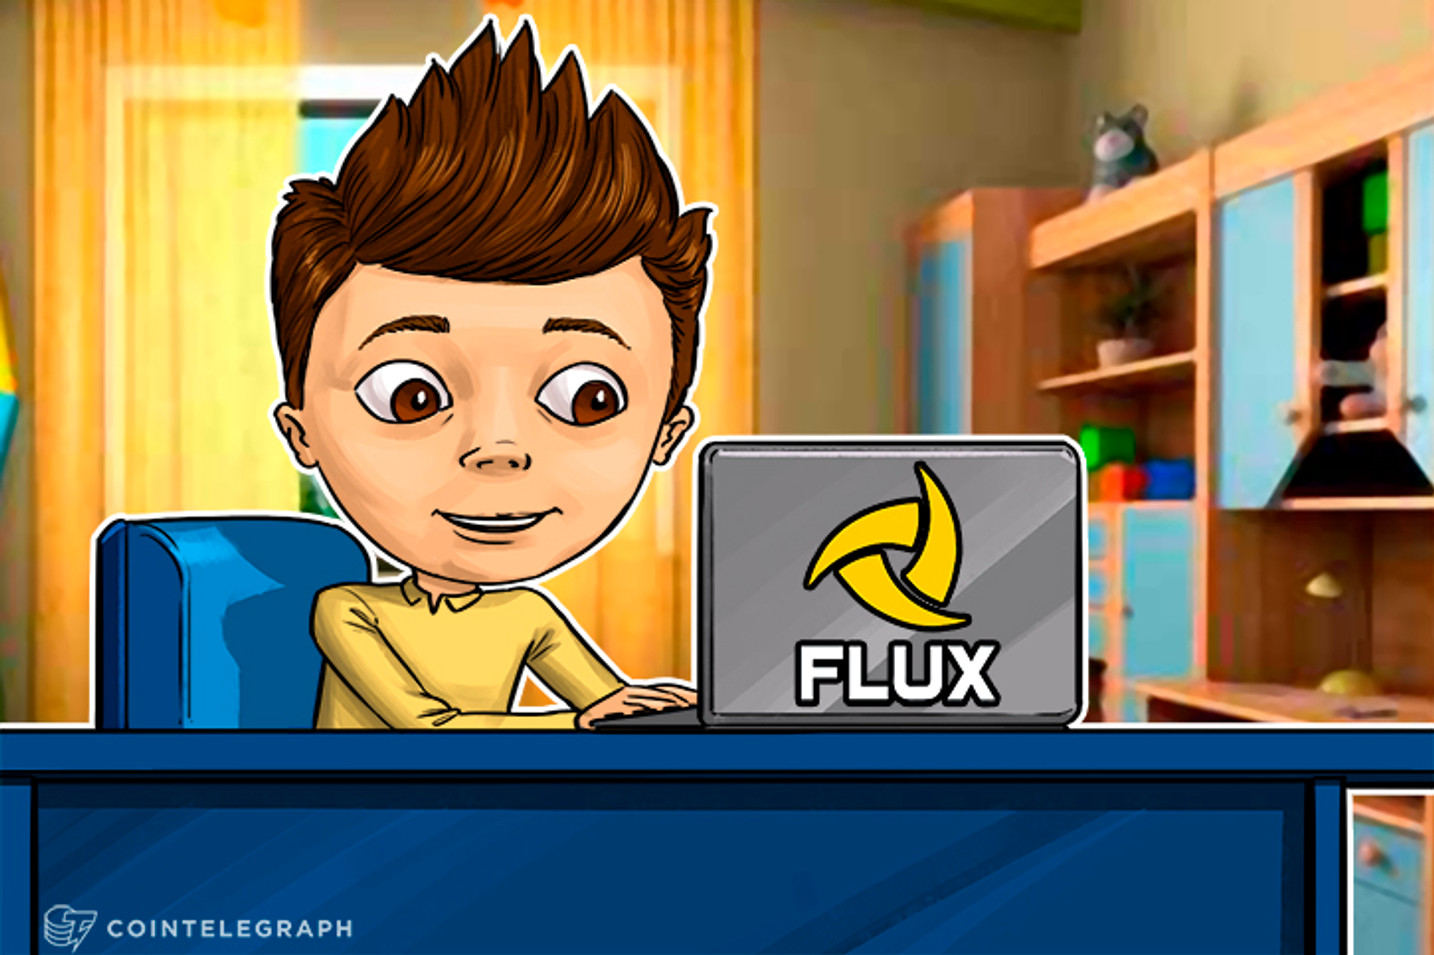 FLUX Global Gaming Ecosystem – Player-Owned Gaming Platform Builds Strong Loyalty